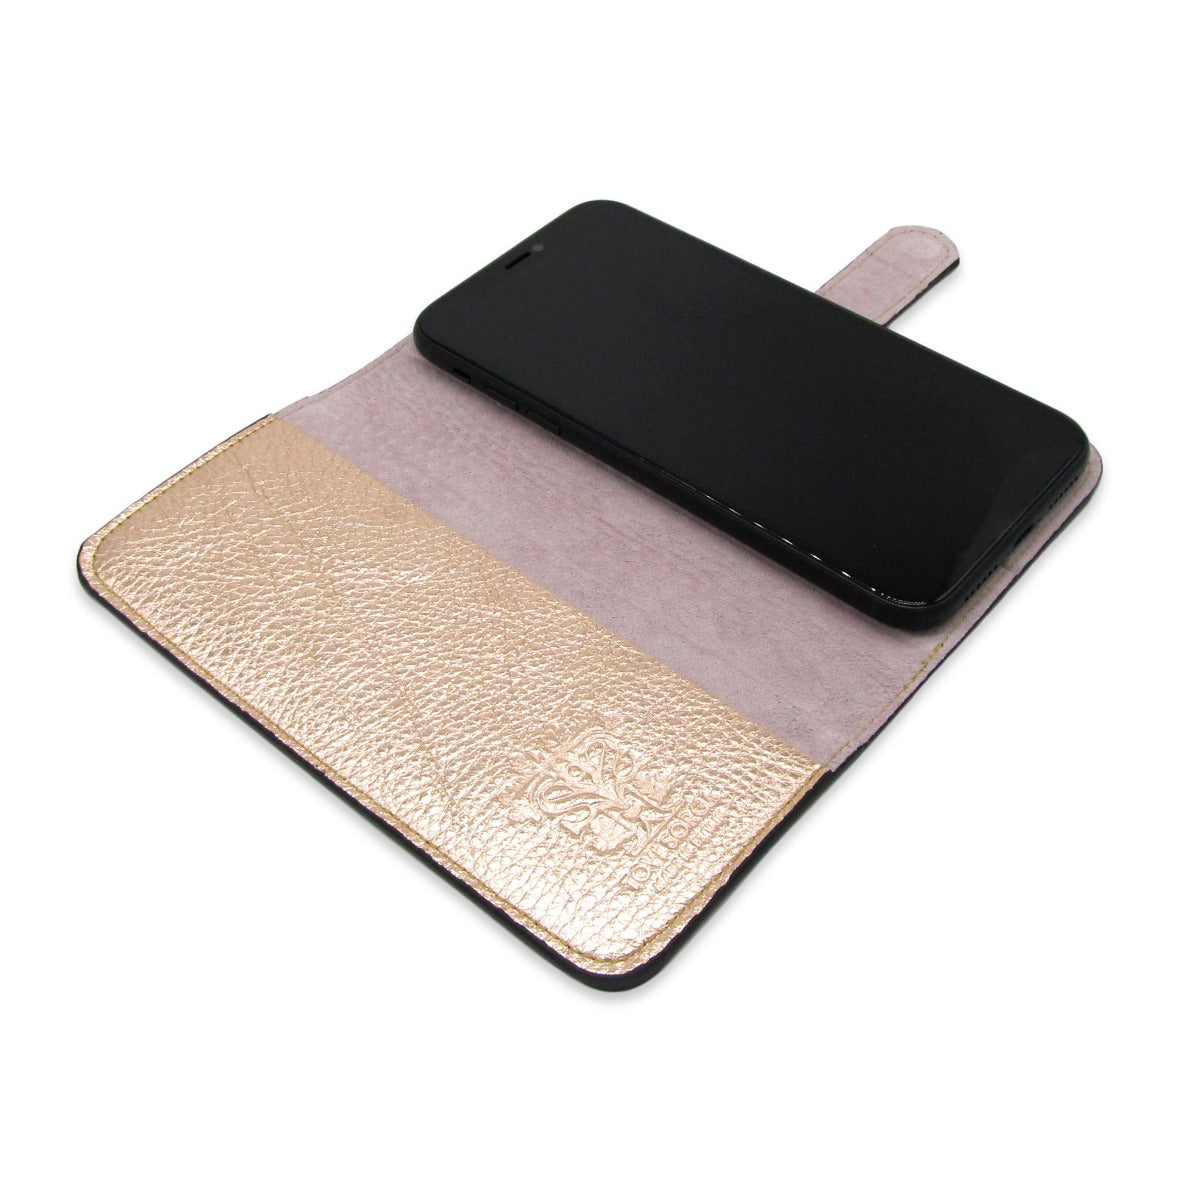 iphone 11 pro leather case - pink lined - gold - bifold cell phone case